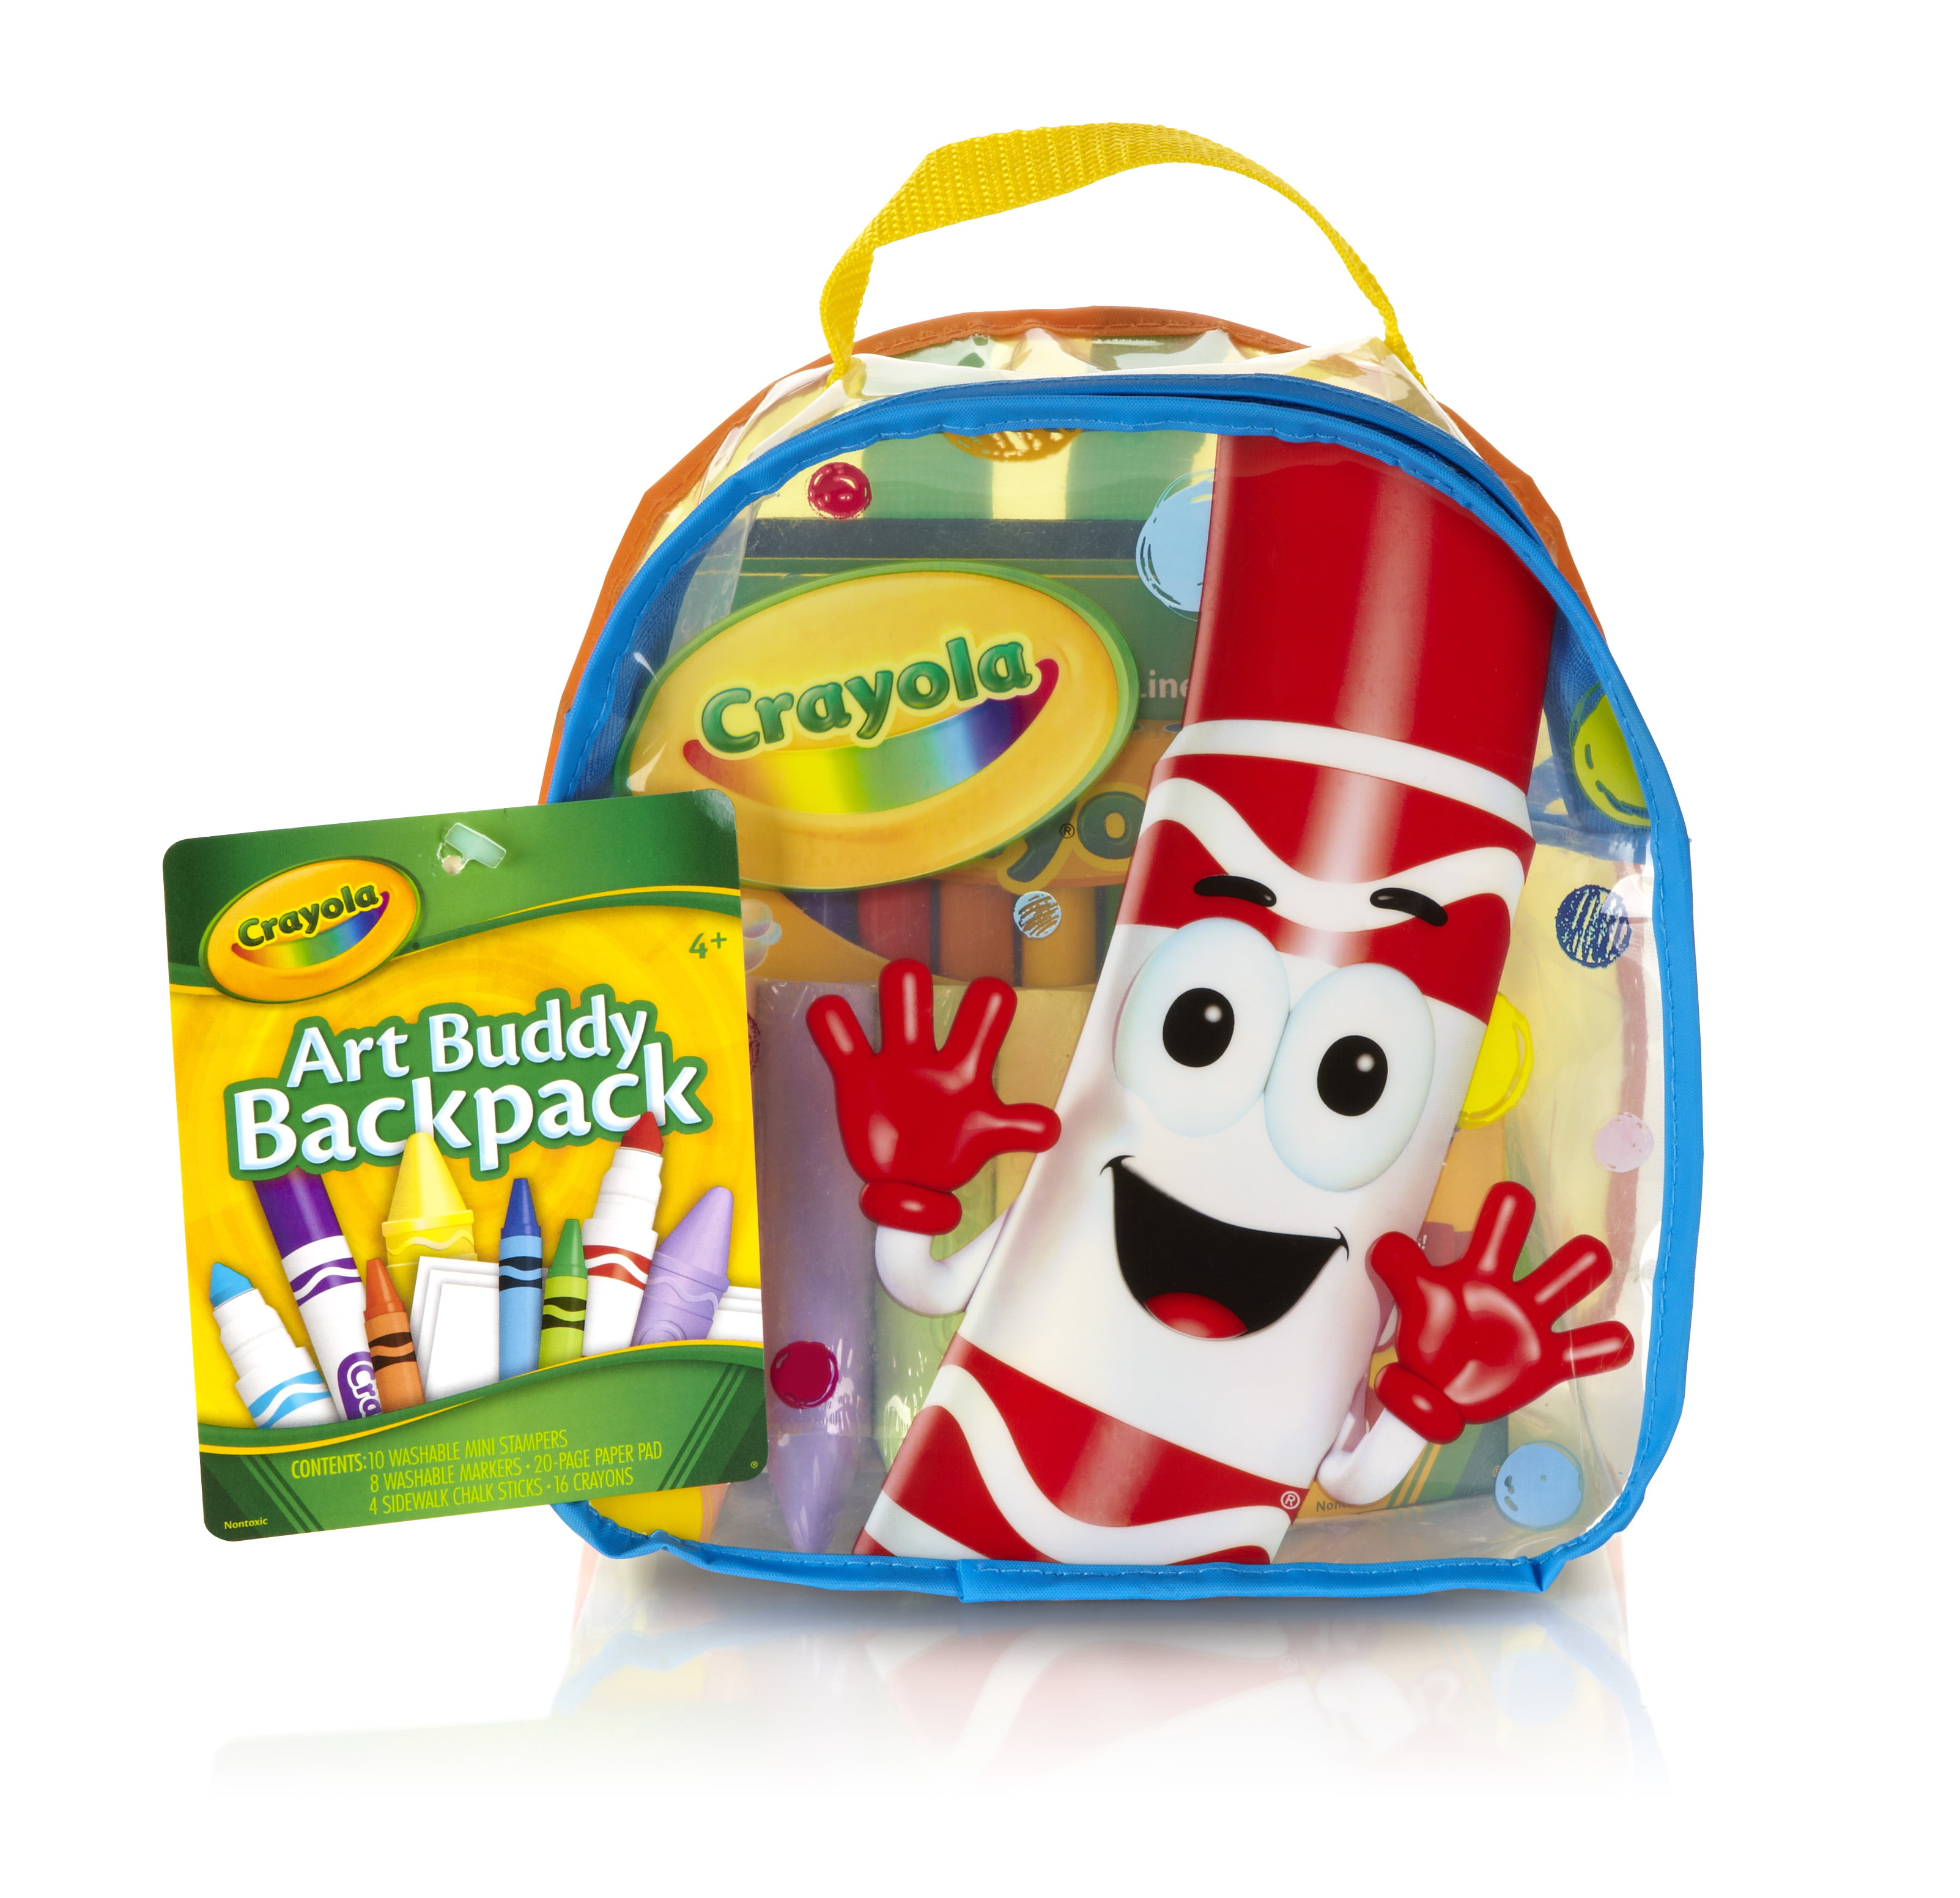 Crayola Art Buddy Backpack includes Crayons, Markers and Chalk, Great for by Crayola